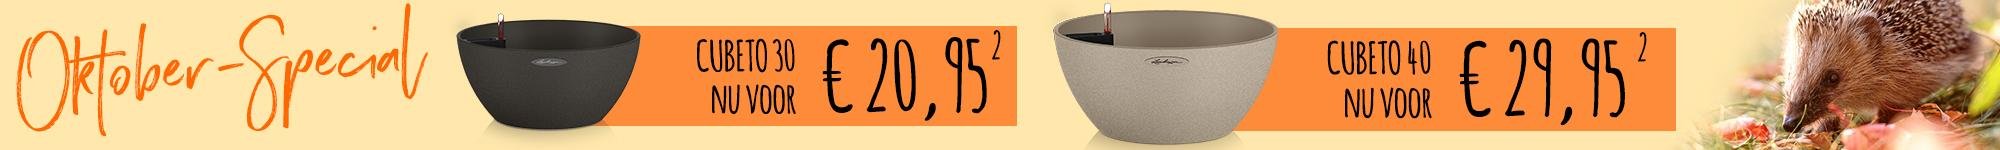 le_listing_banner_cubeto_special_011020_nl